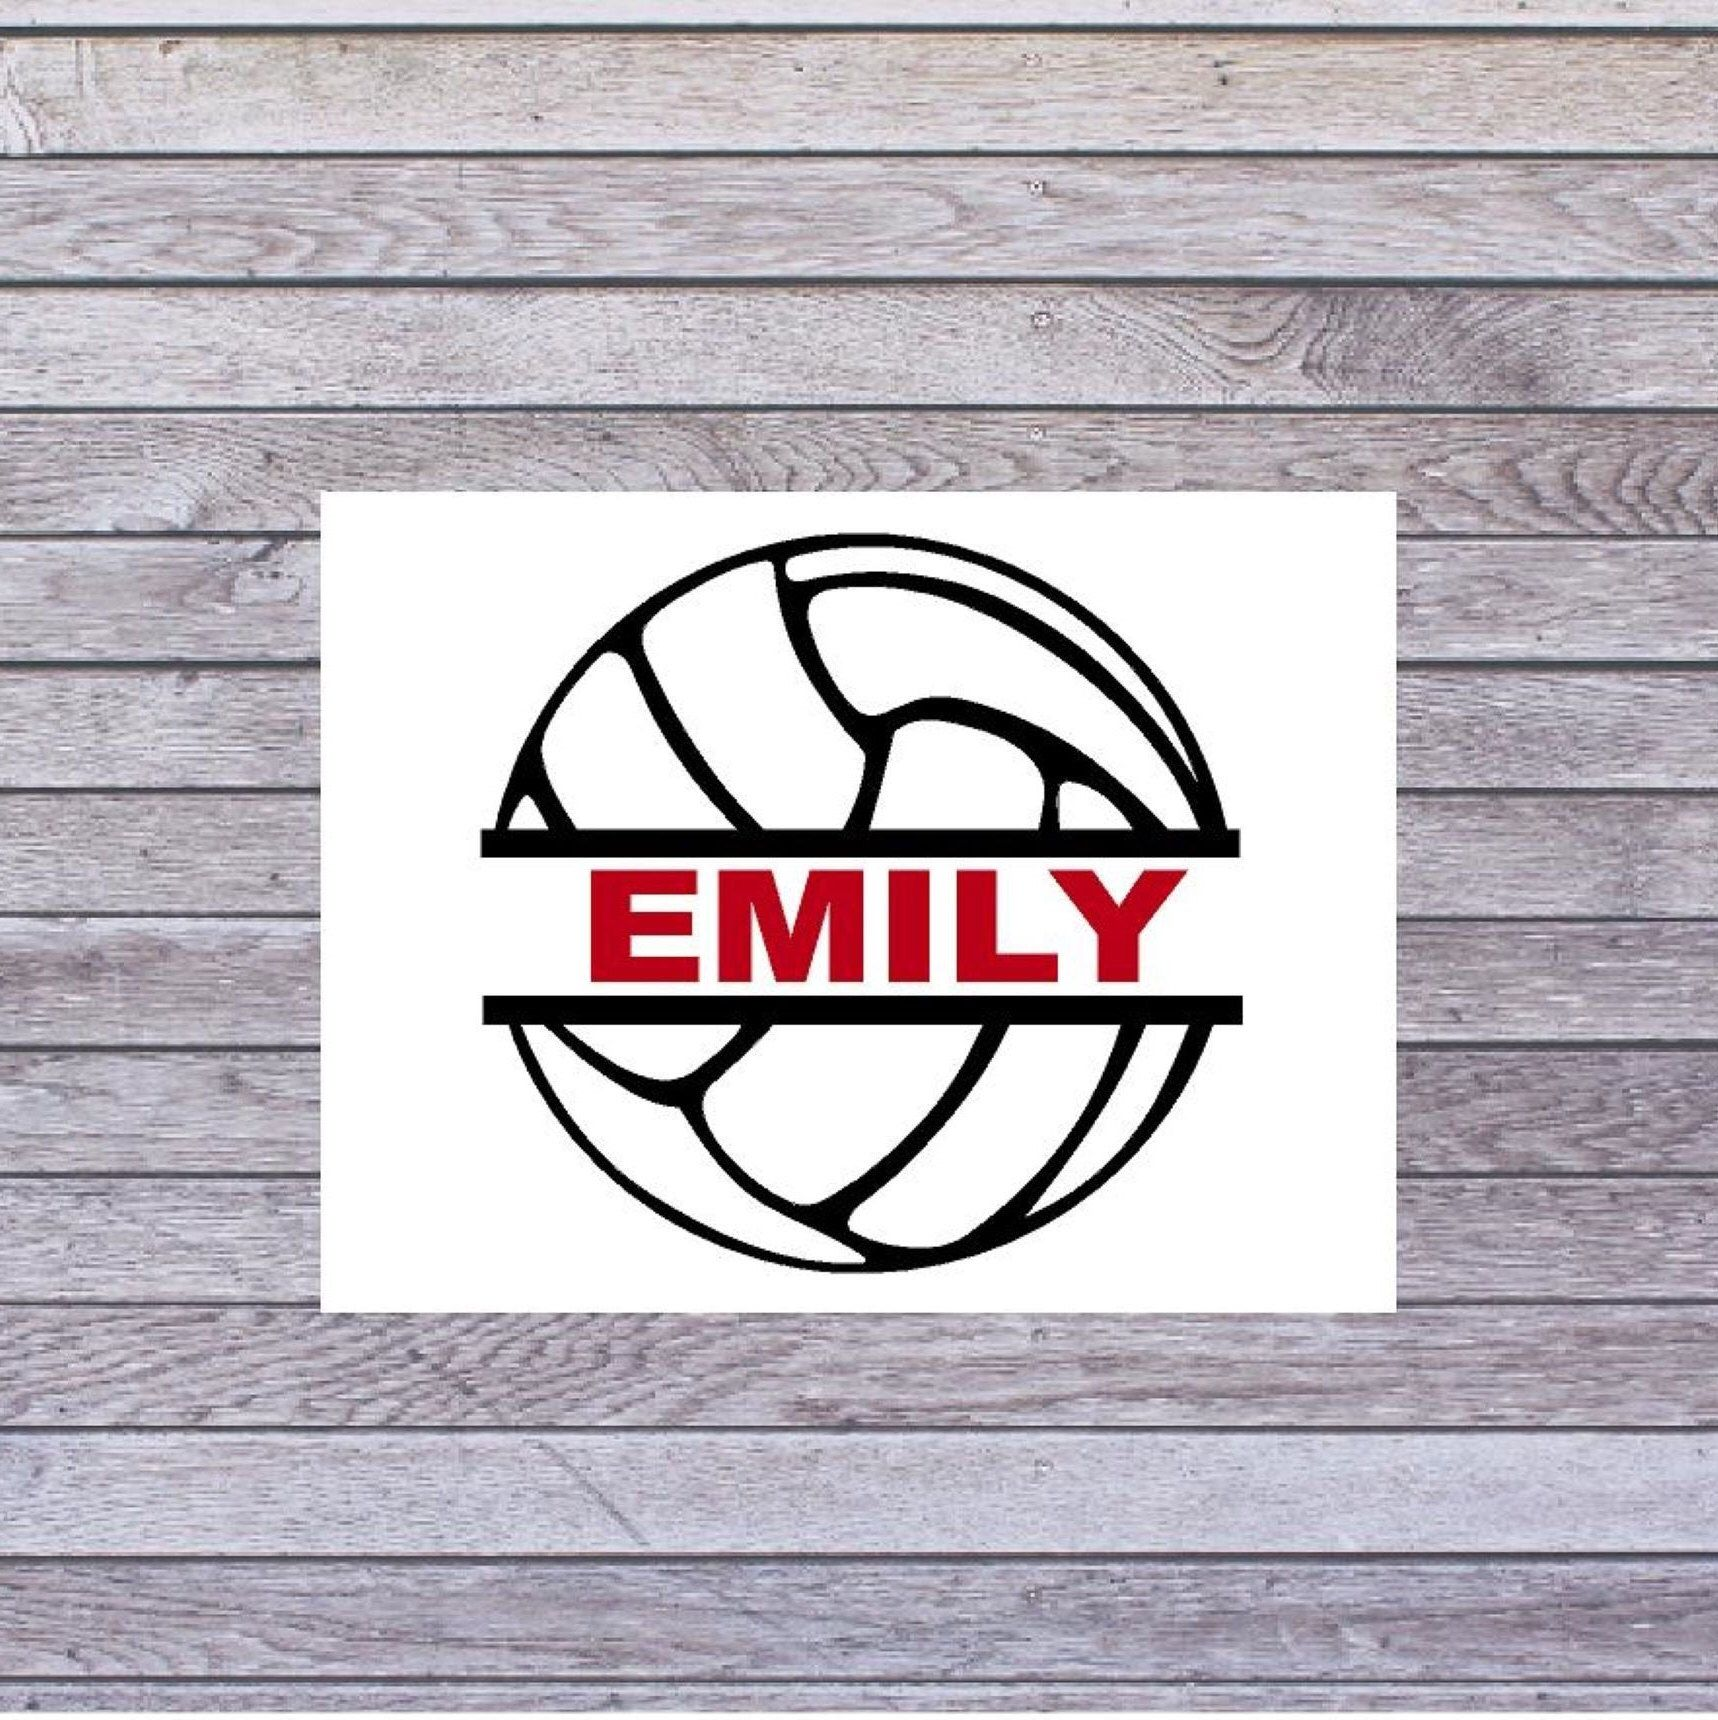 Volleyball Tumbler Decal Volleyball With Name Decal Custom Name Decal Volleyball Vinyl Name Decal Tumbler Decal Tumbler Kids Decals [ 1720 x 1718 Pixel ]